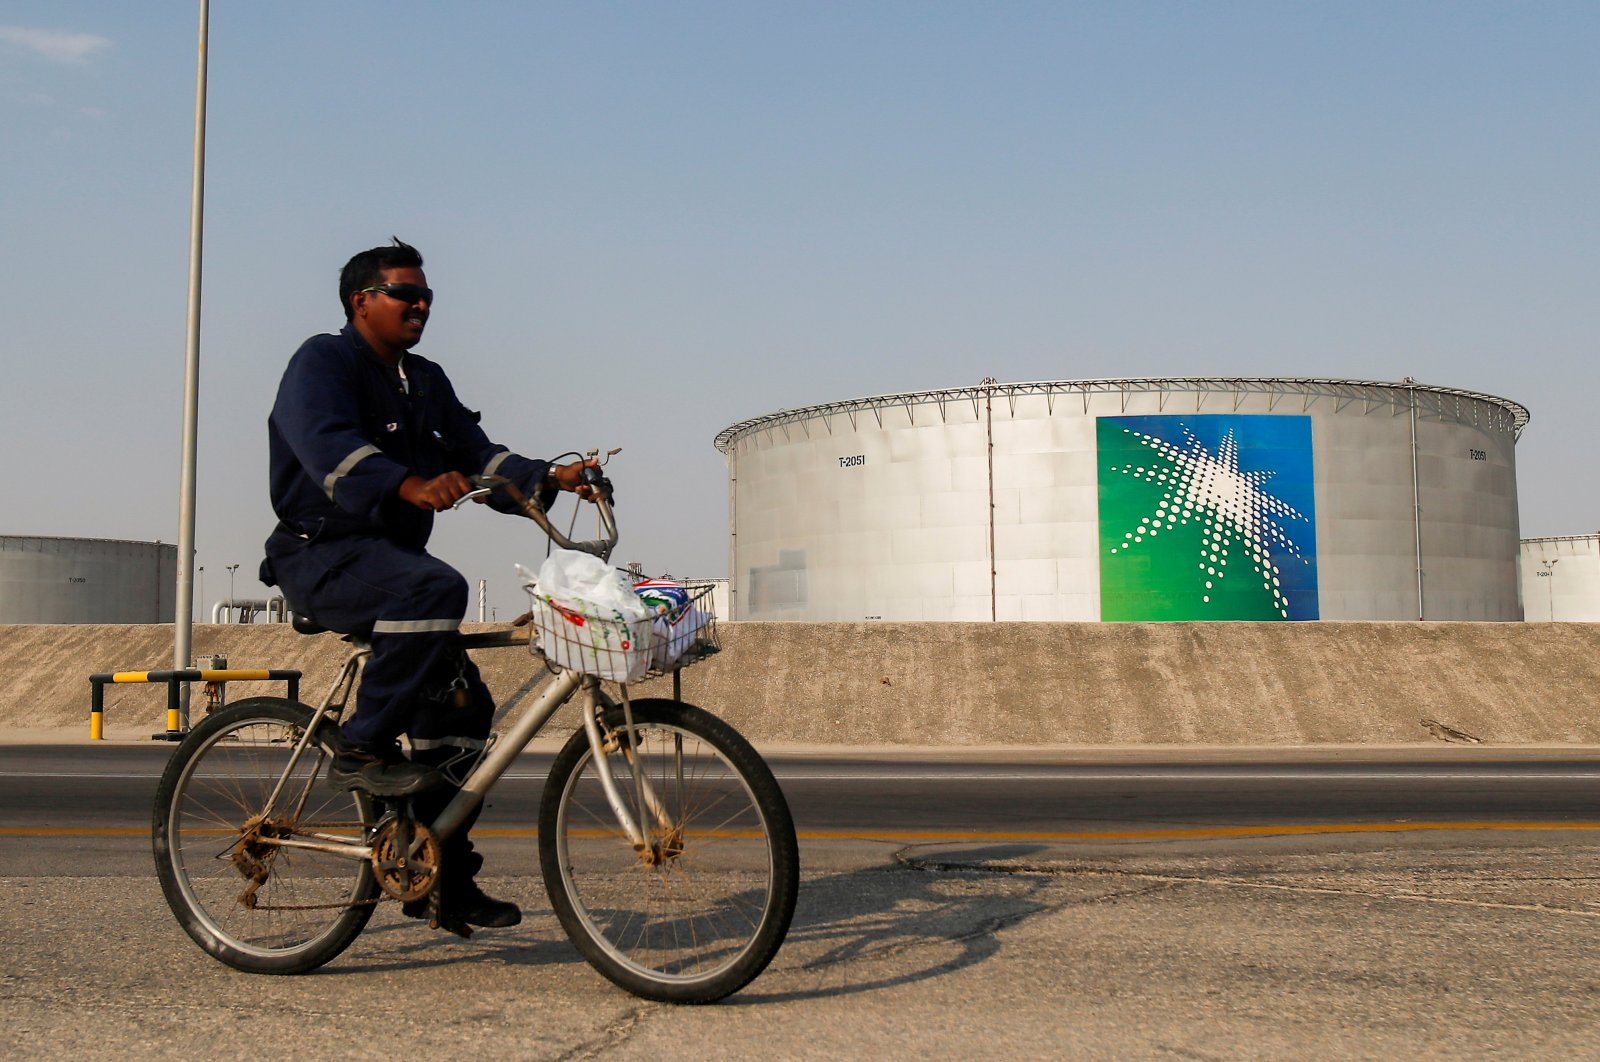 An employee rides a bicycle next to oil tanks at the Saudi Aramco oil facility in Abqaiq, Saudi Arabia, Oct. 12, 2019. (Reuters Photo)